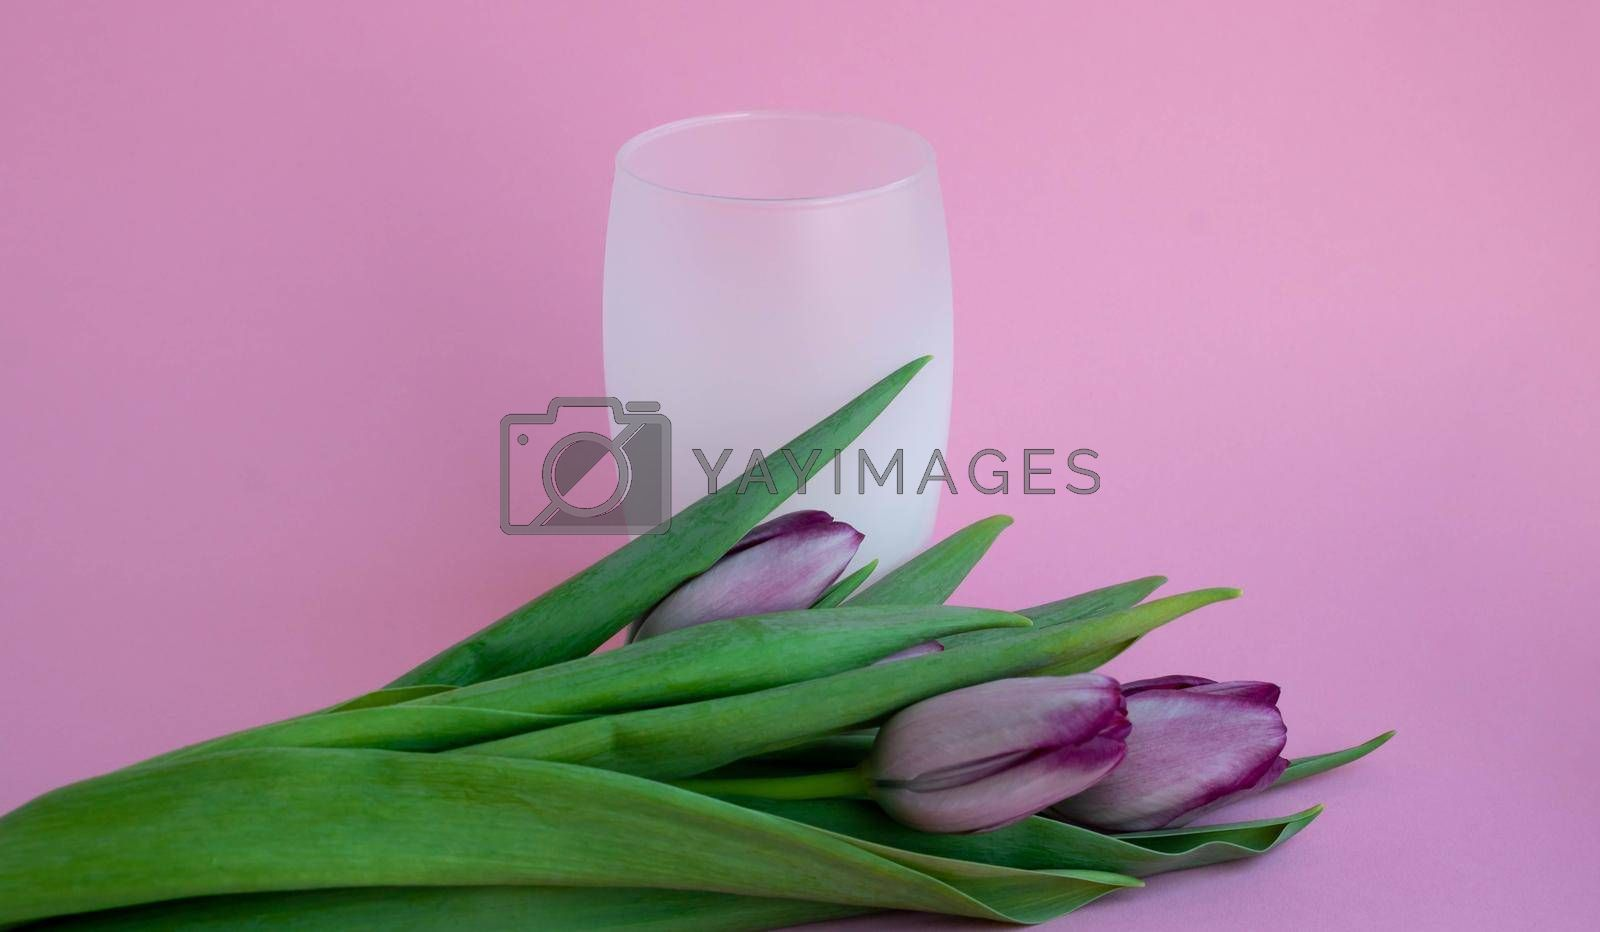 Tulips lie next to a white frosted drink glass on a pink background.